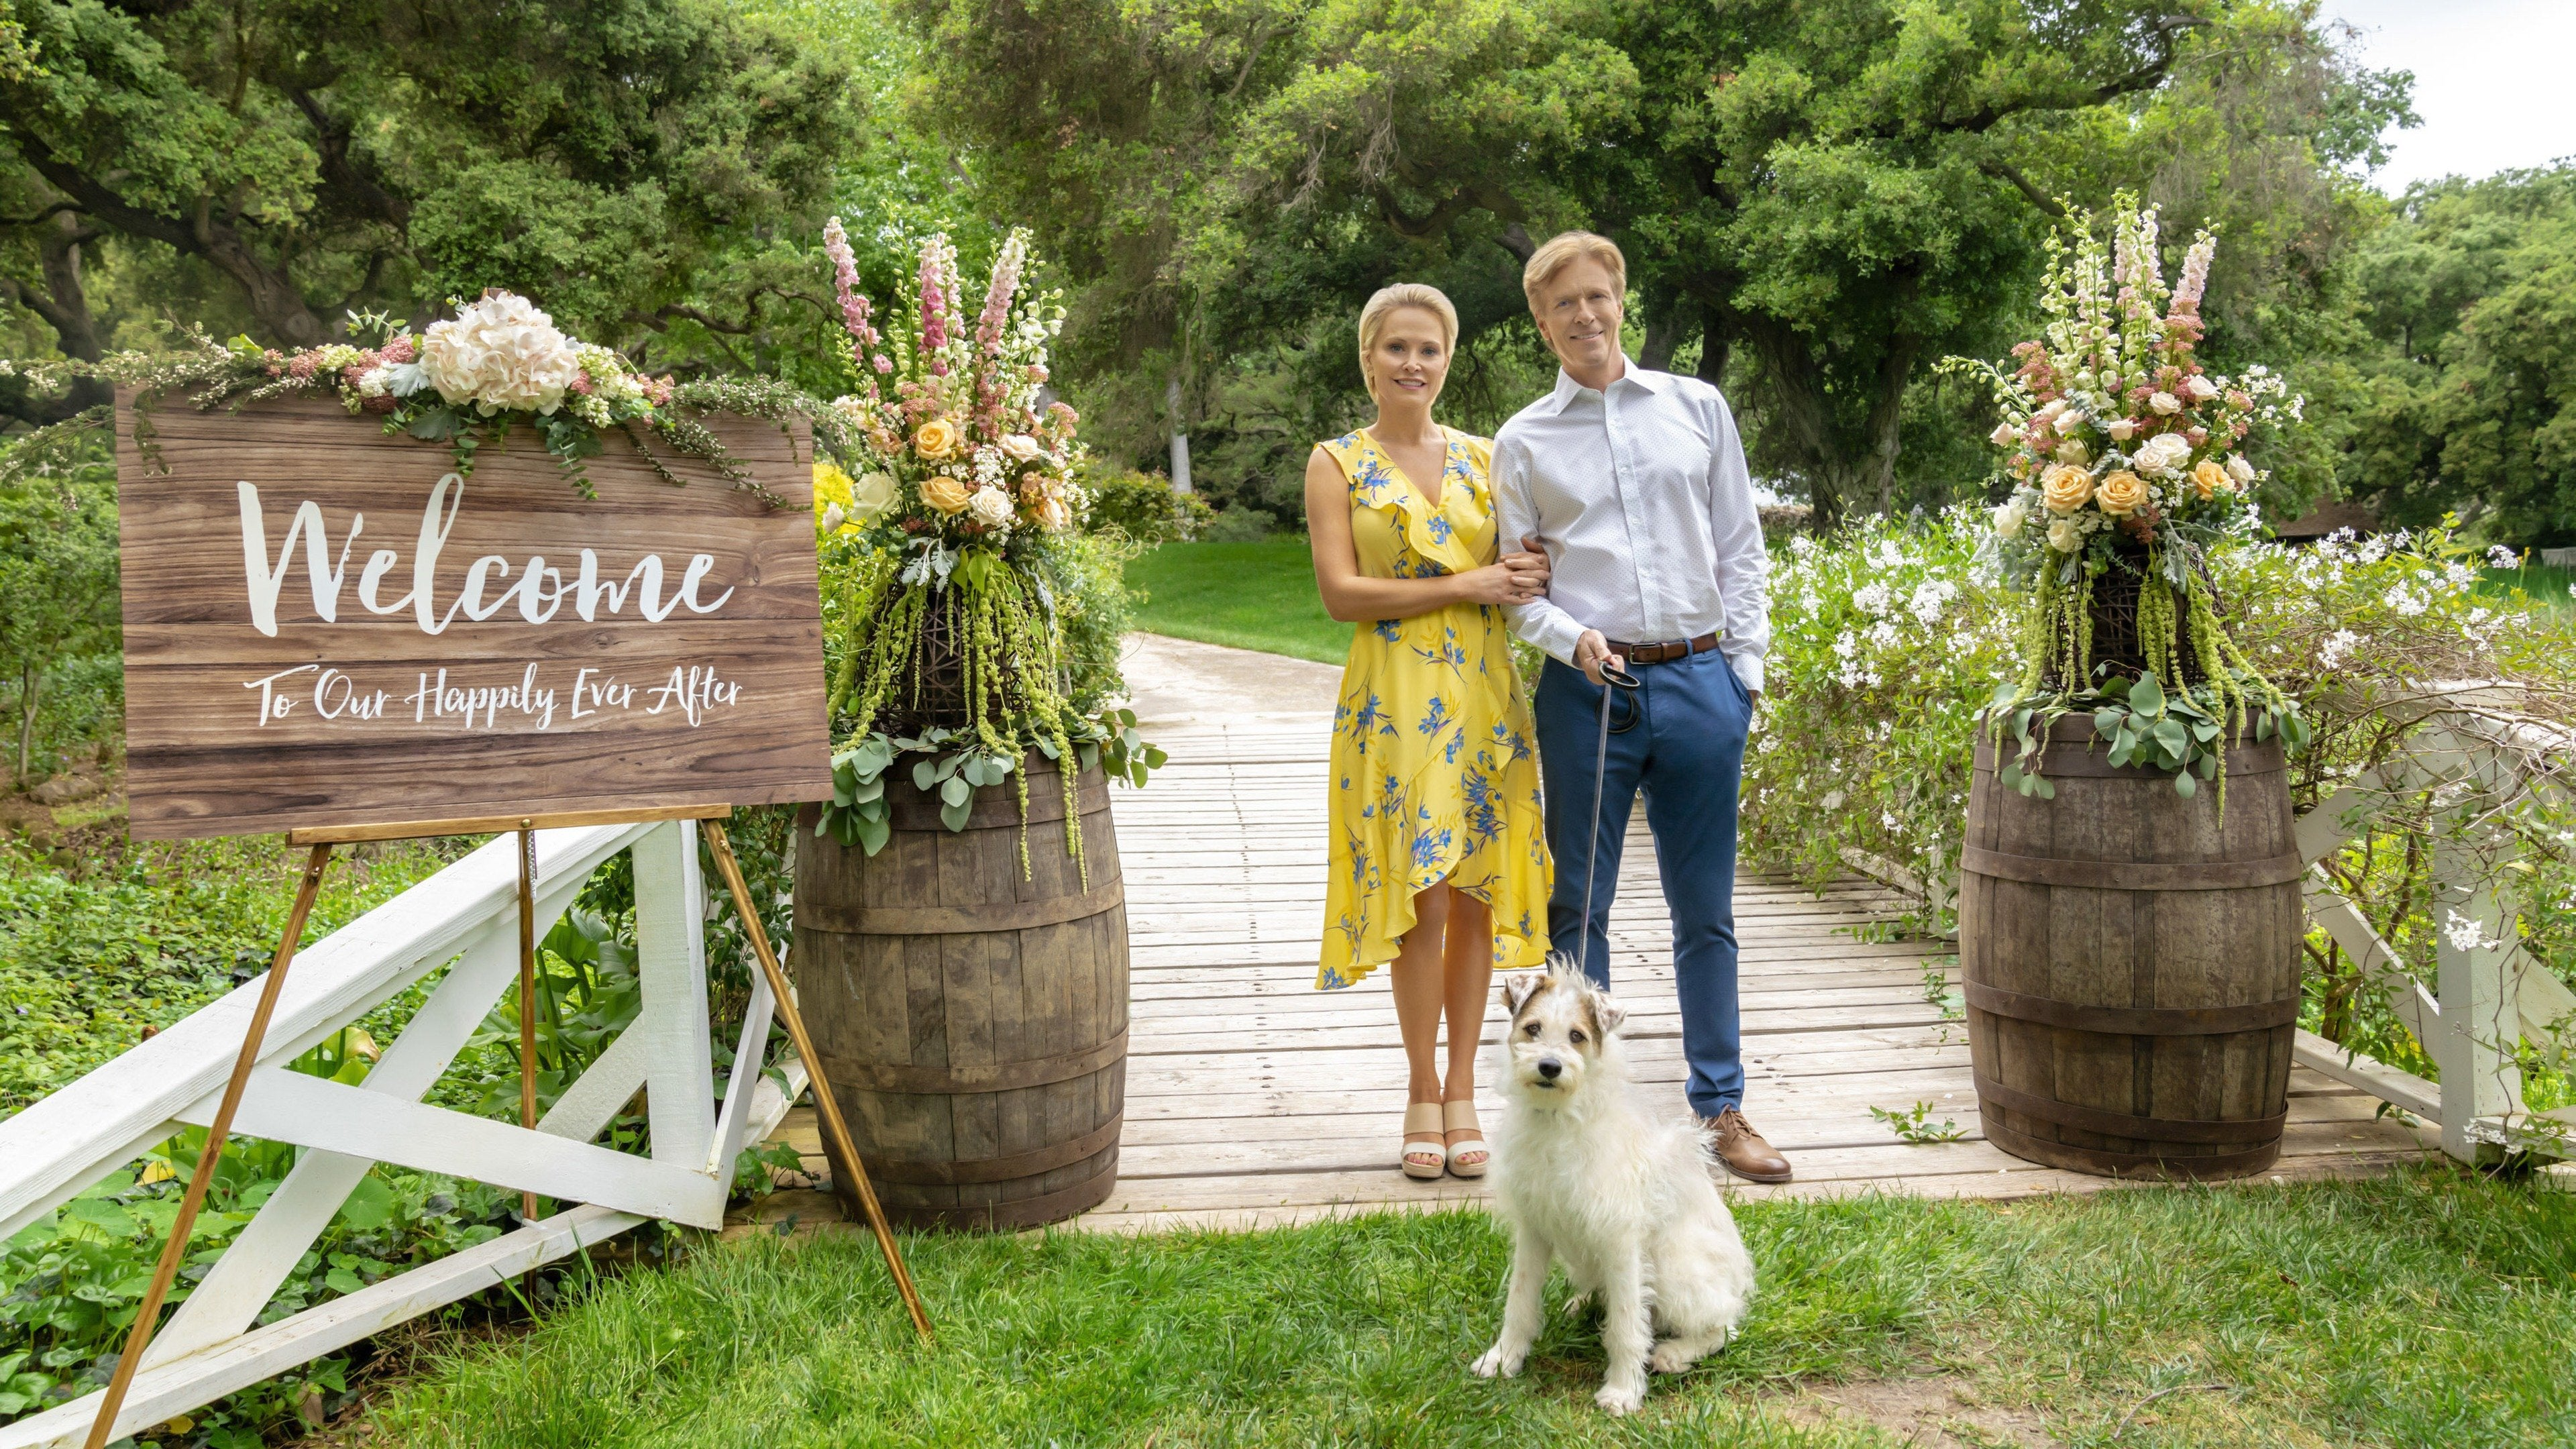 2019 June Weddings Preview Special